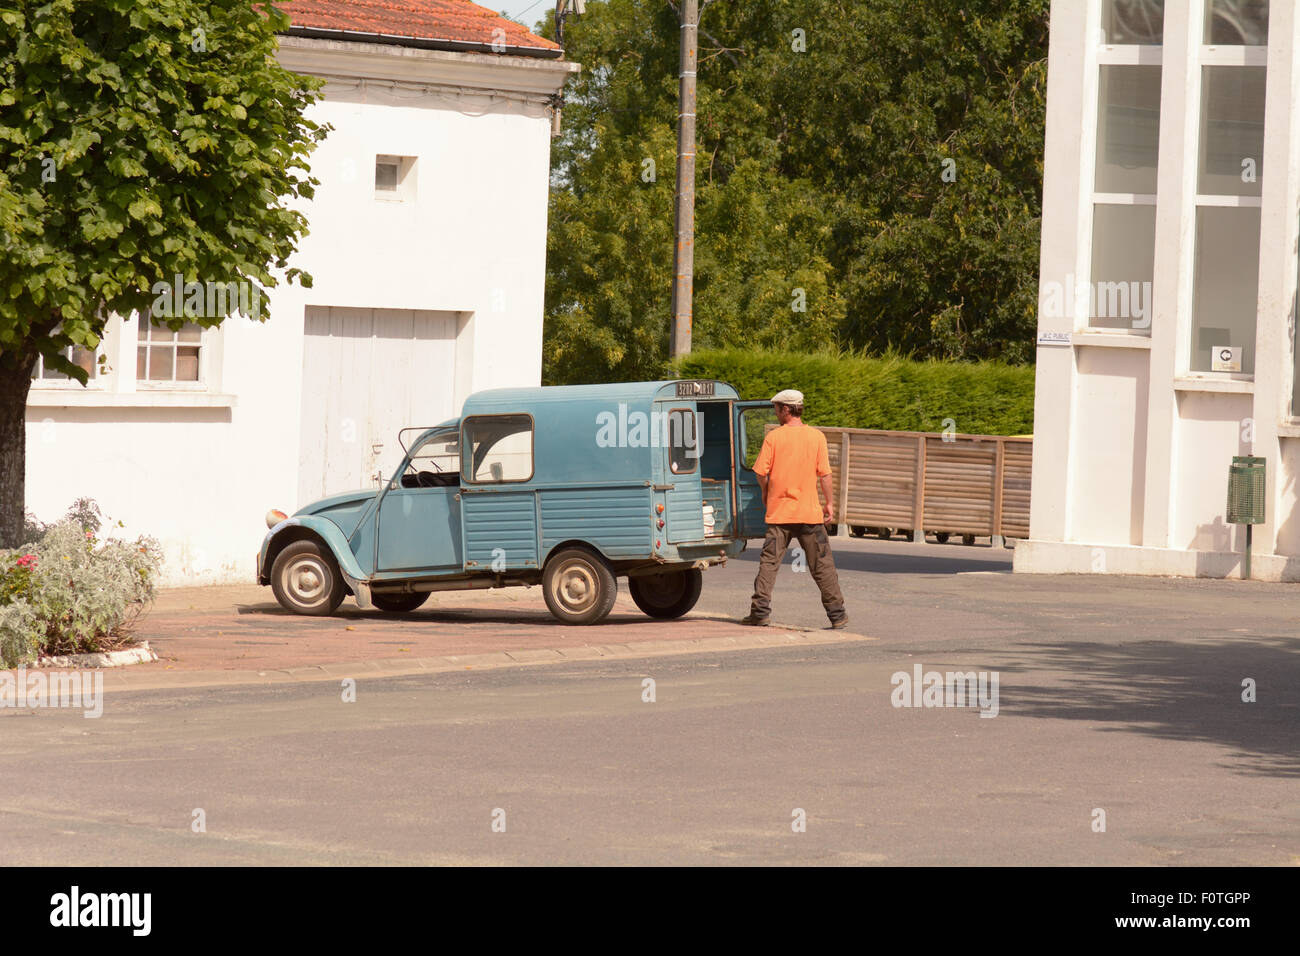 citroen 2cv van stock photos  u0026 citroen 2cv van stock